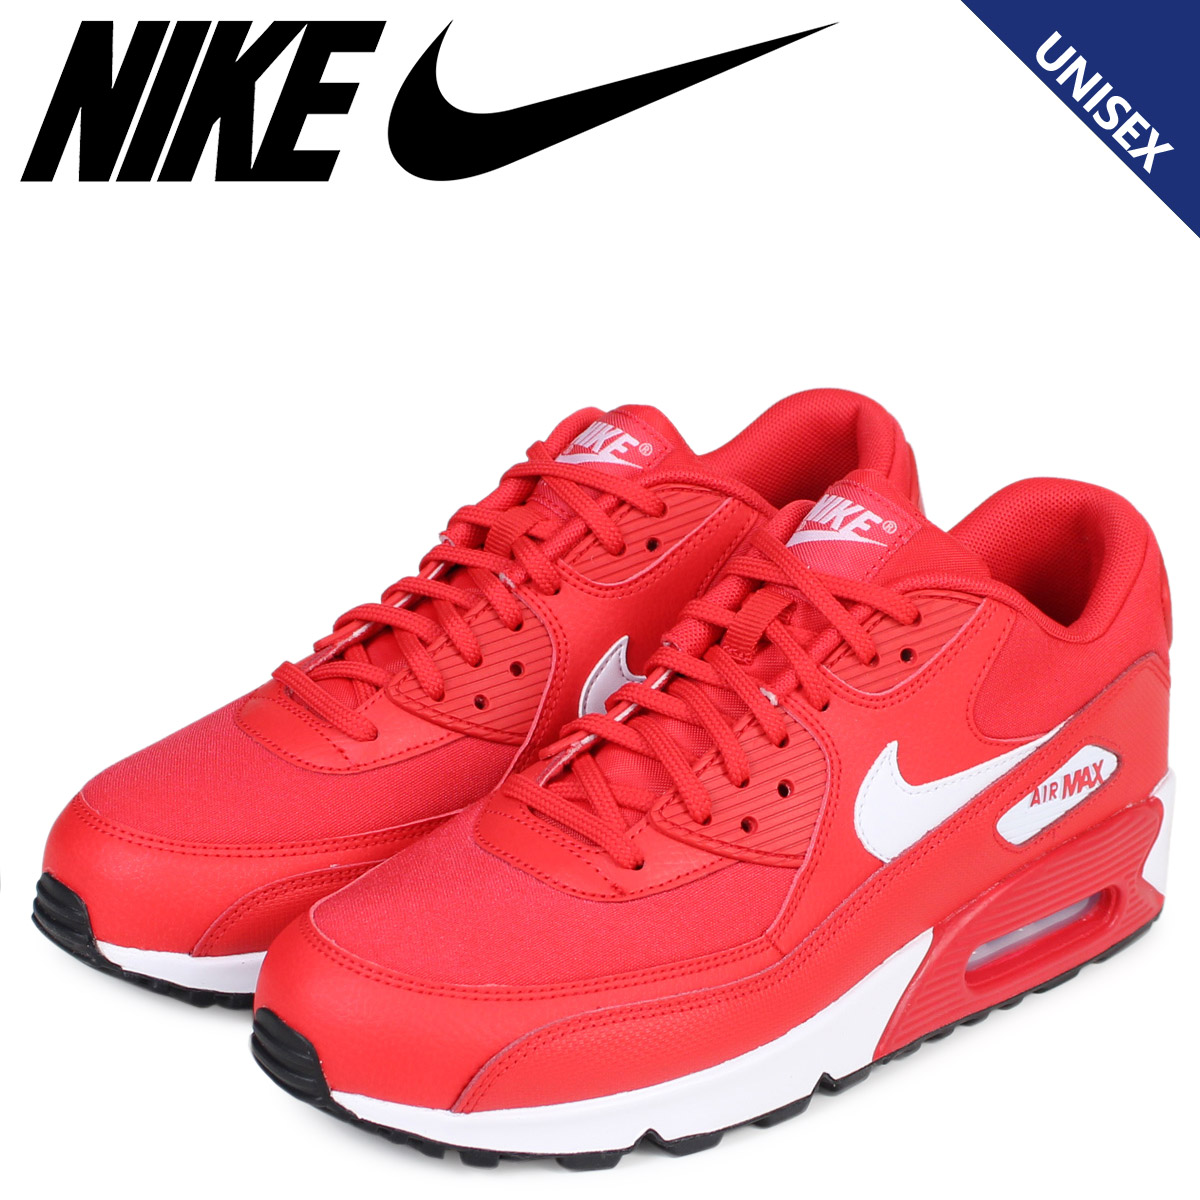 af12283f387 Sugar Online Shop  NIKE Kie Ney AMAX 90 Lady s sneakers WMNS AIR MAX ...